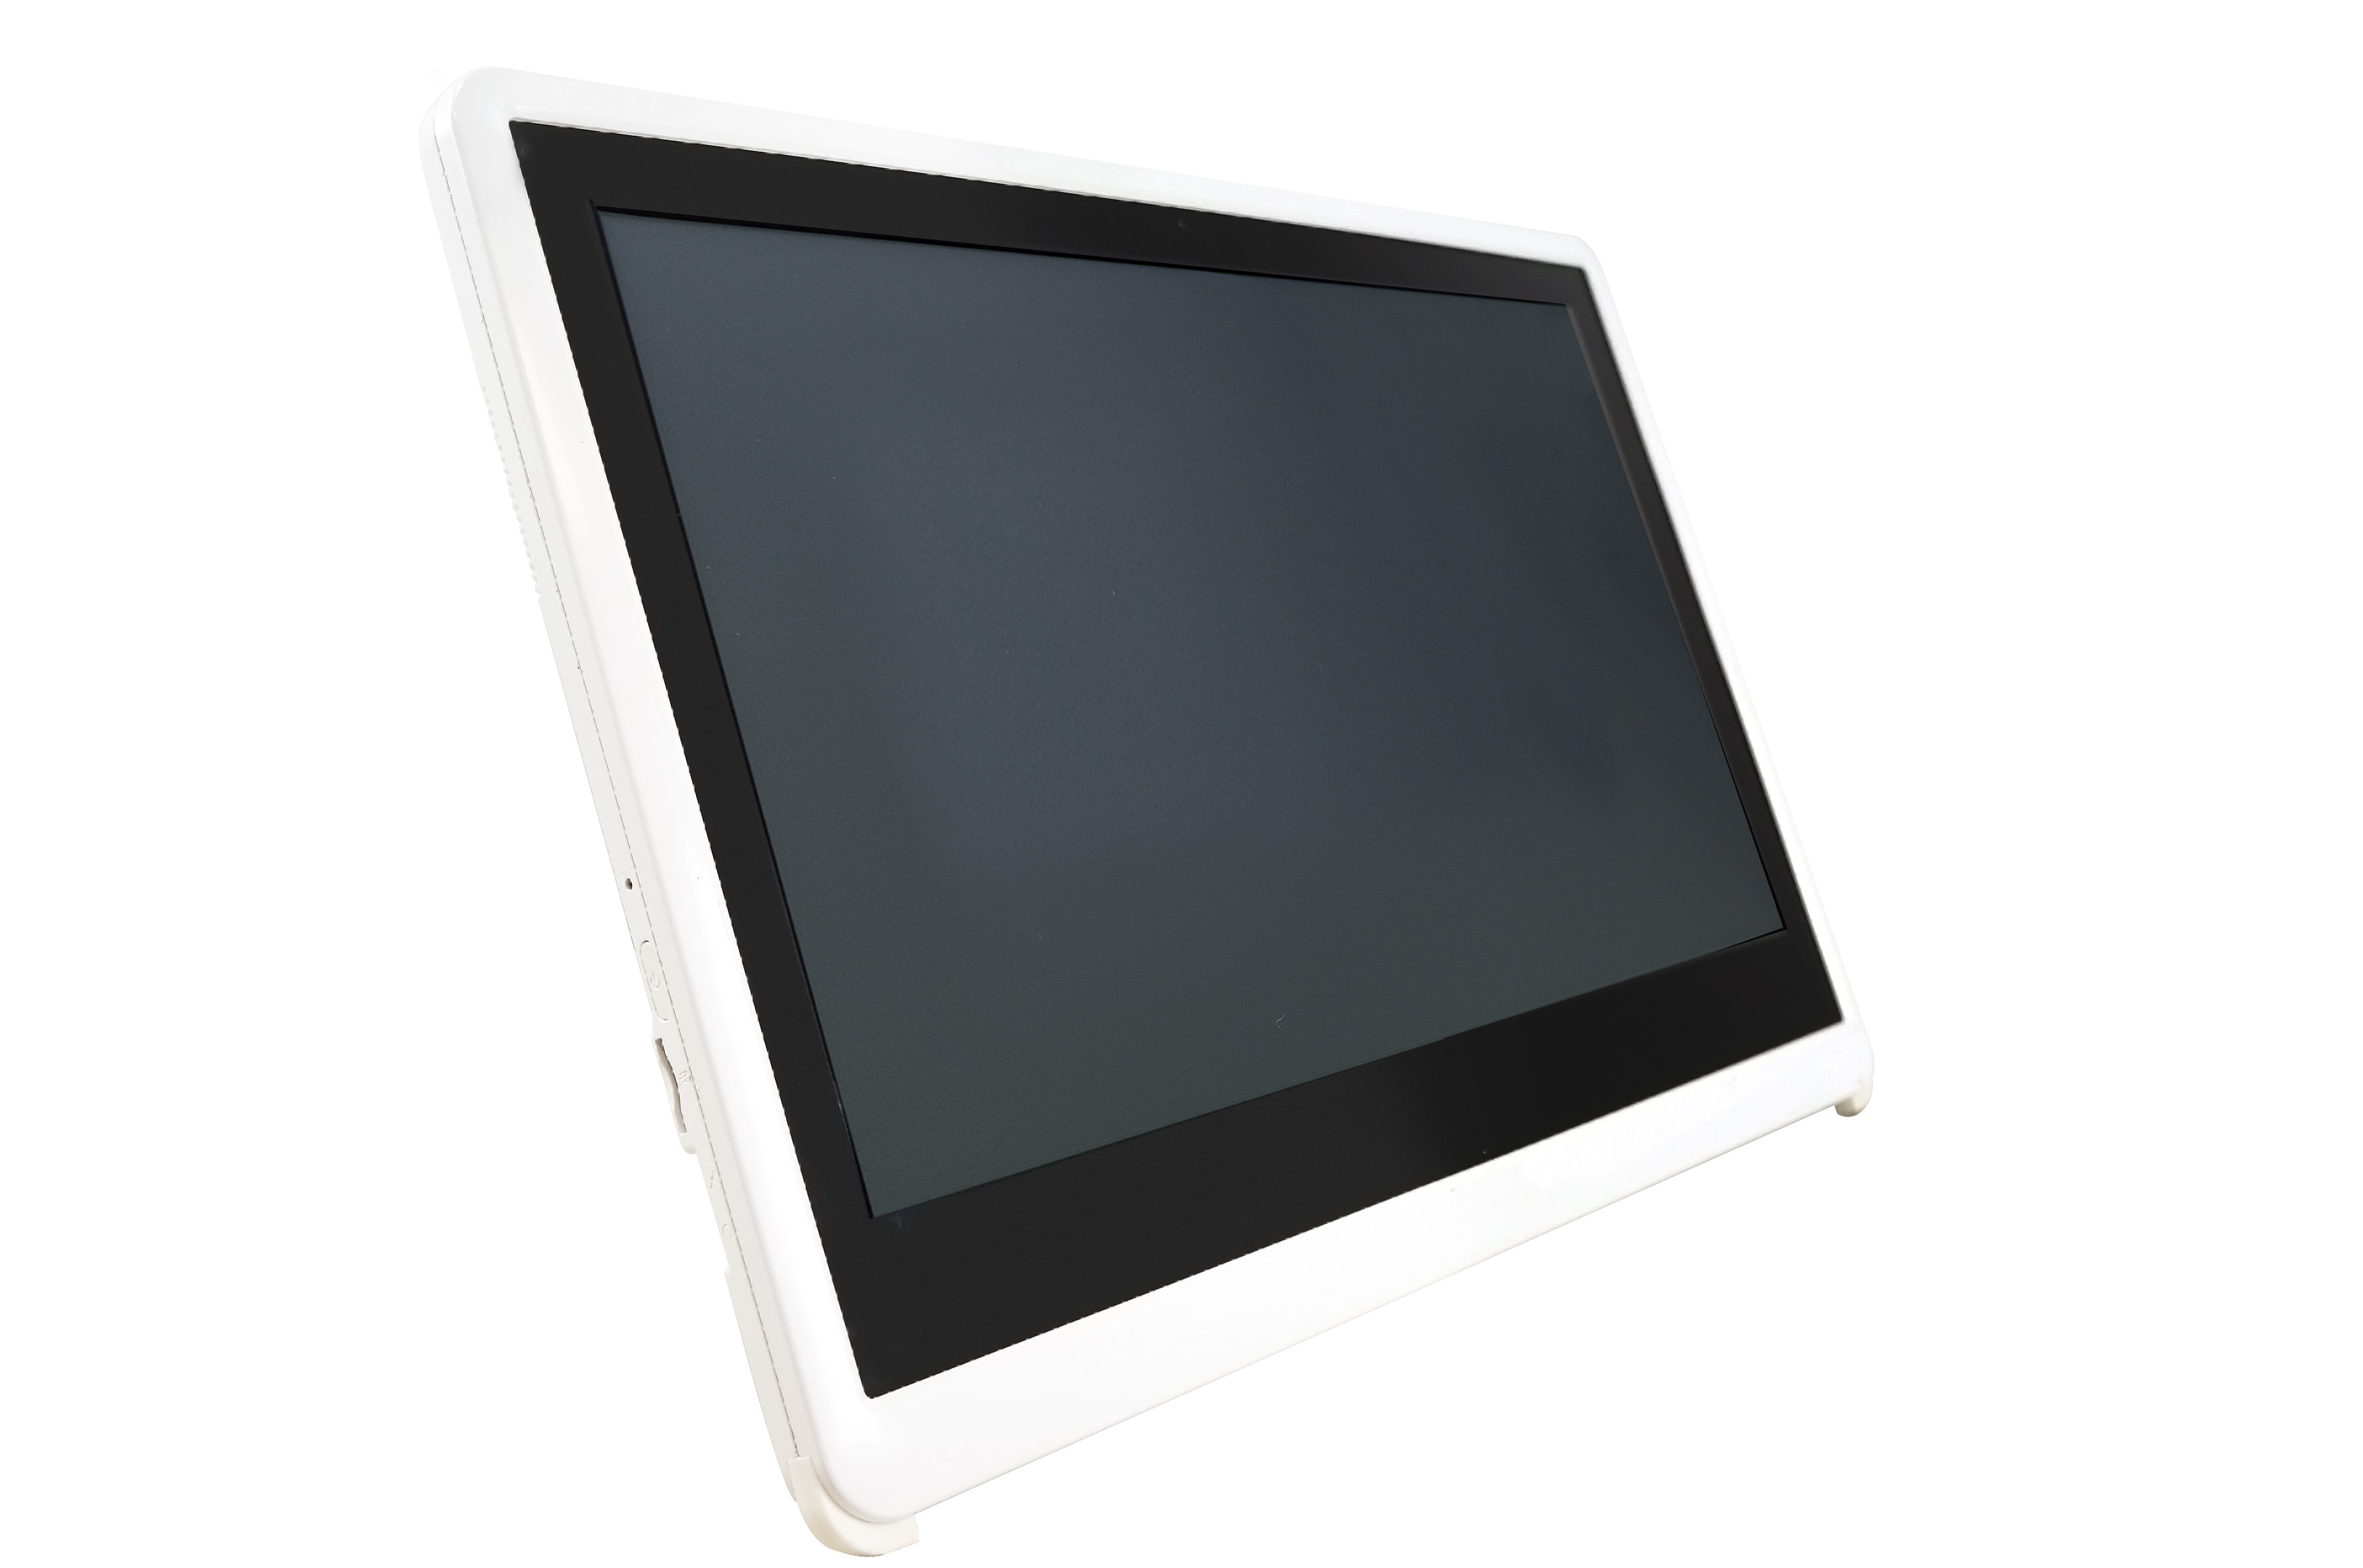 Latest Product News From Braemac Uk Touch Screen With Eeti Controller Buy Resistive Screentouch The Mpc240 Is En60601 1 Ce And Fcc Class B Certified